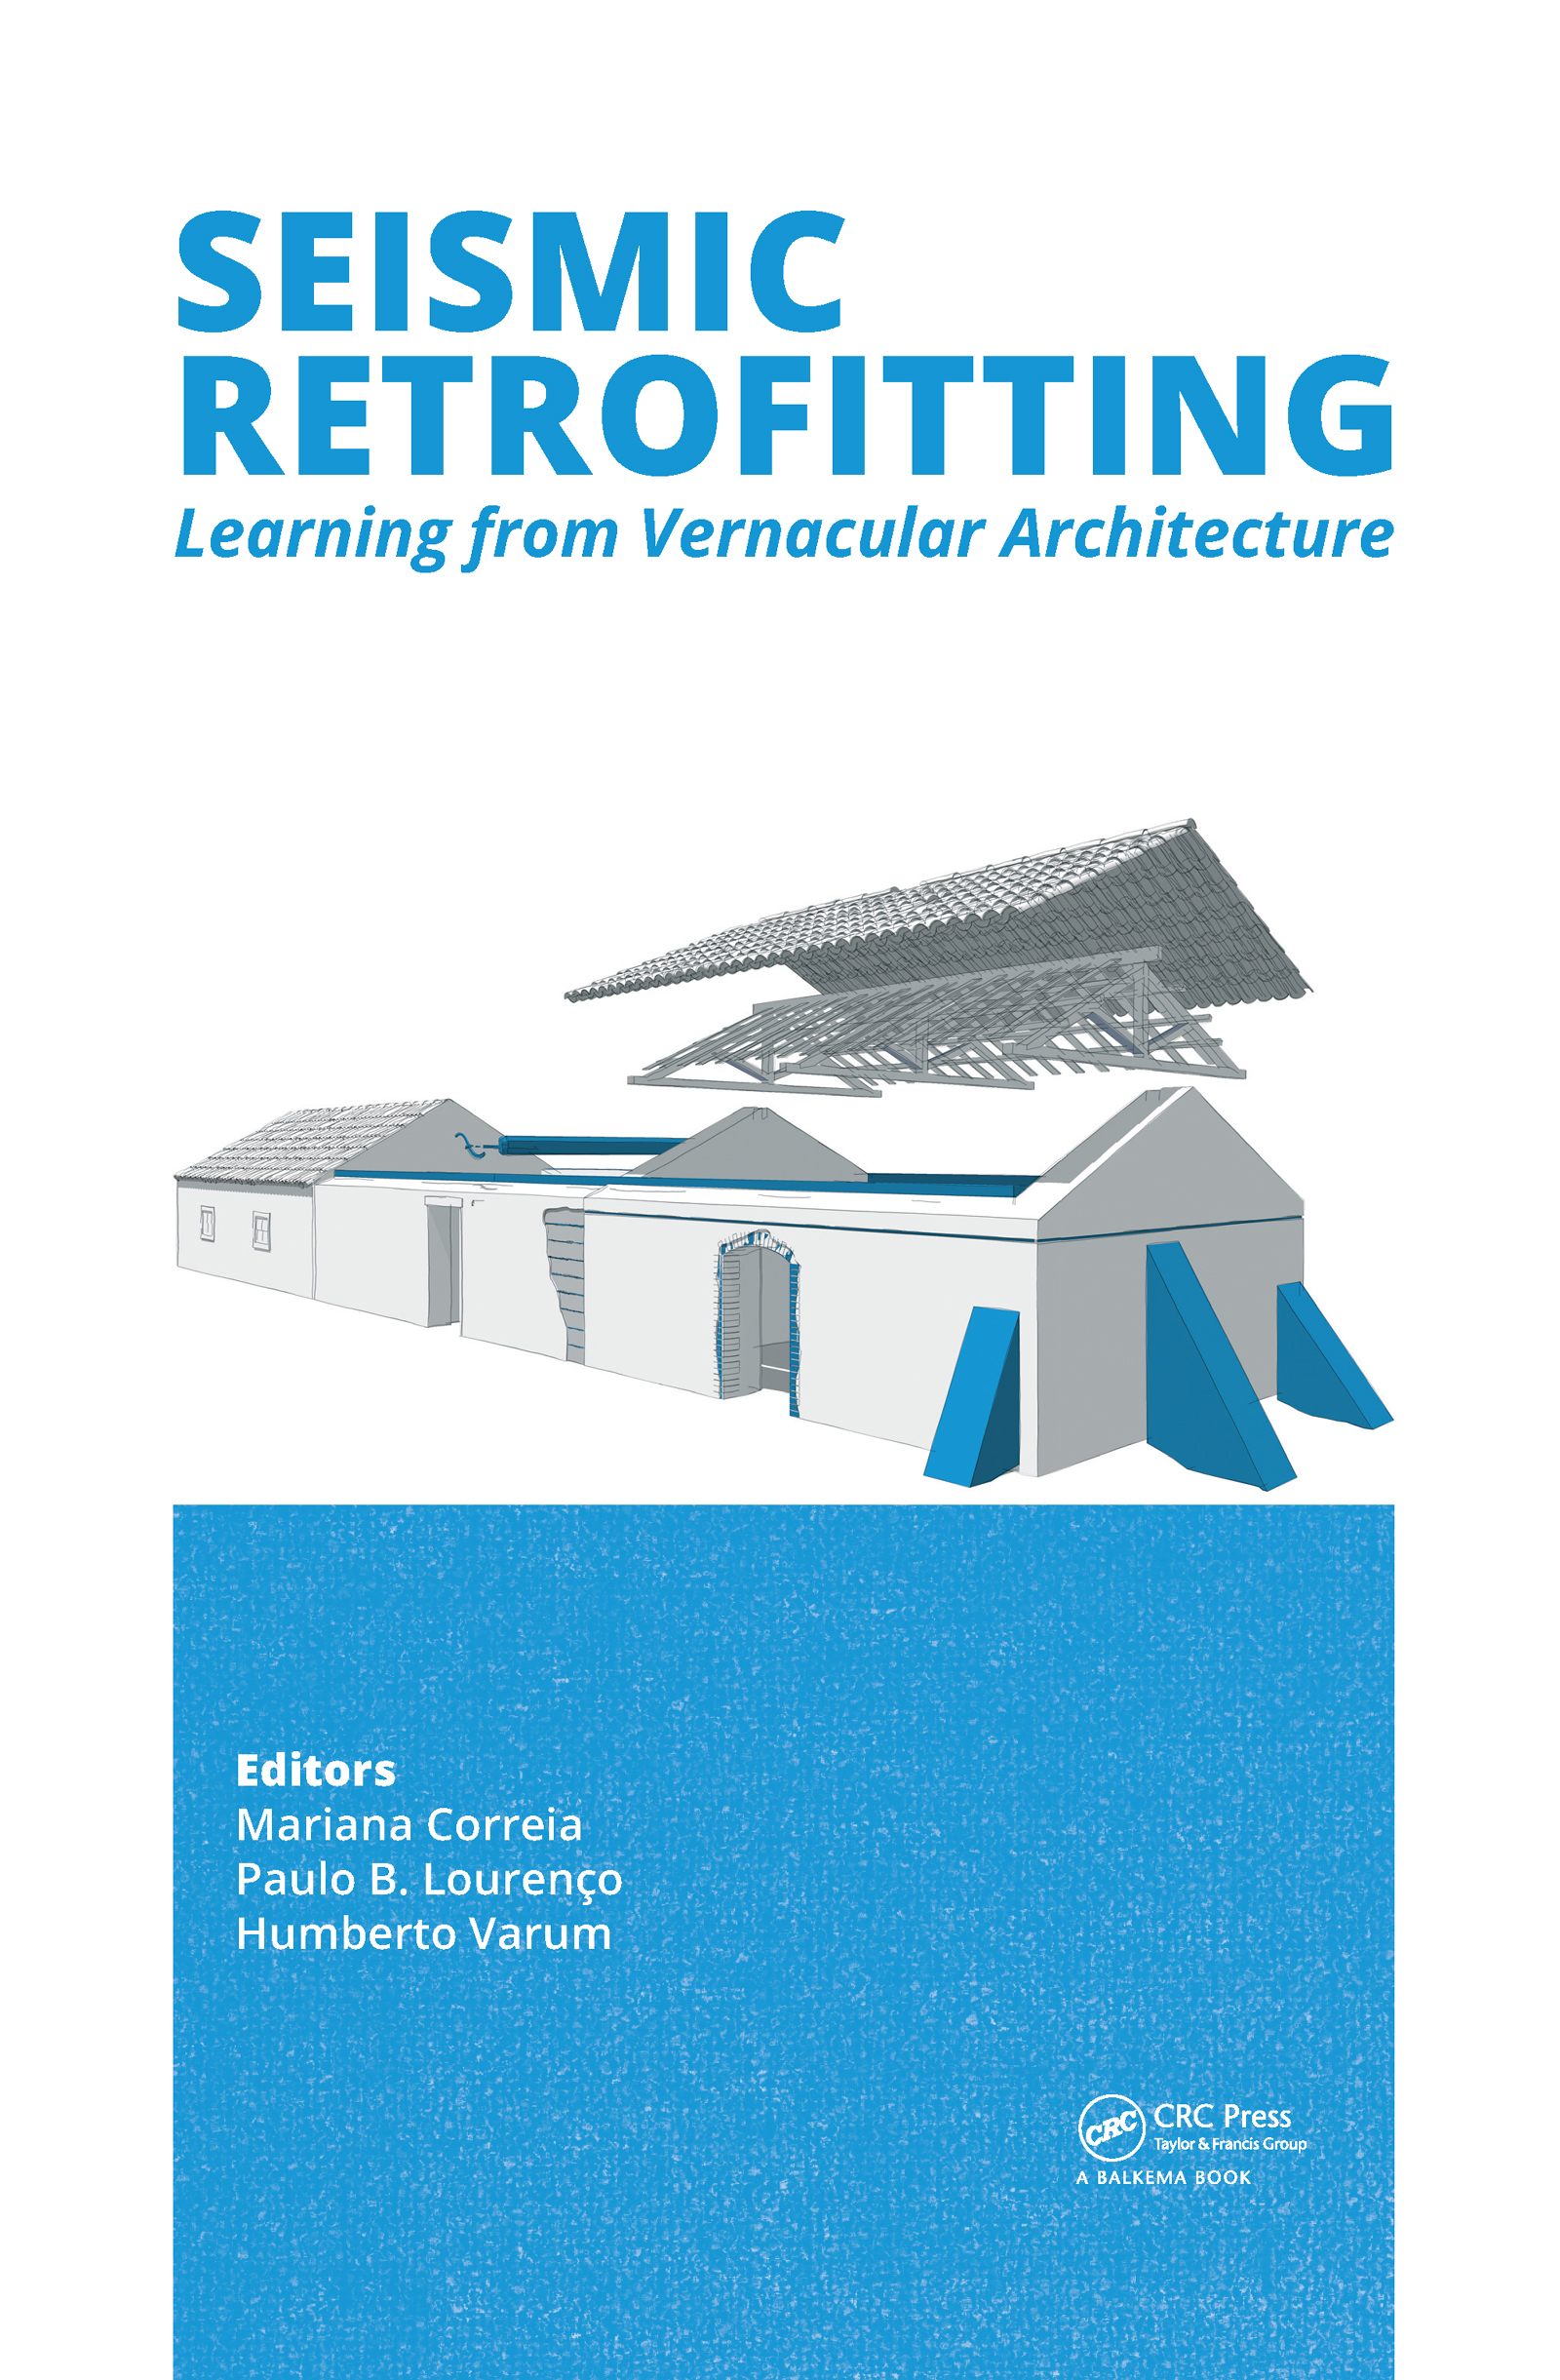 Seismic Retrofitting: Learning from Vernacular Architecture: 1st Edition (Pack - Book and CD) book cover